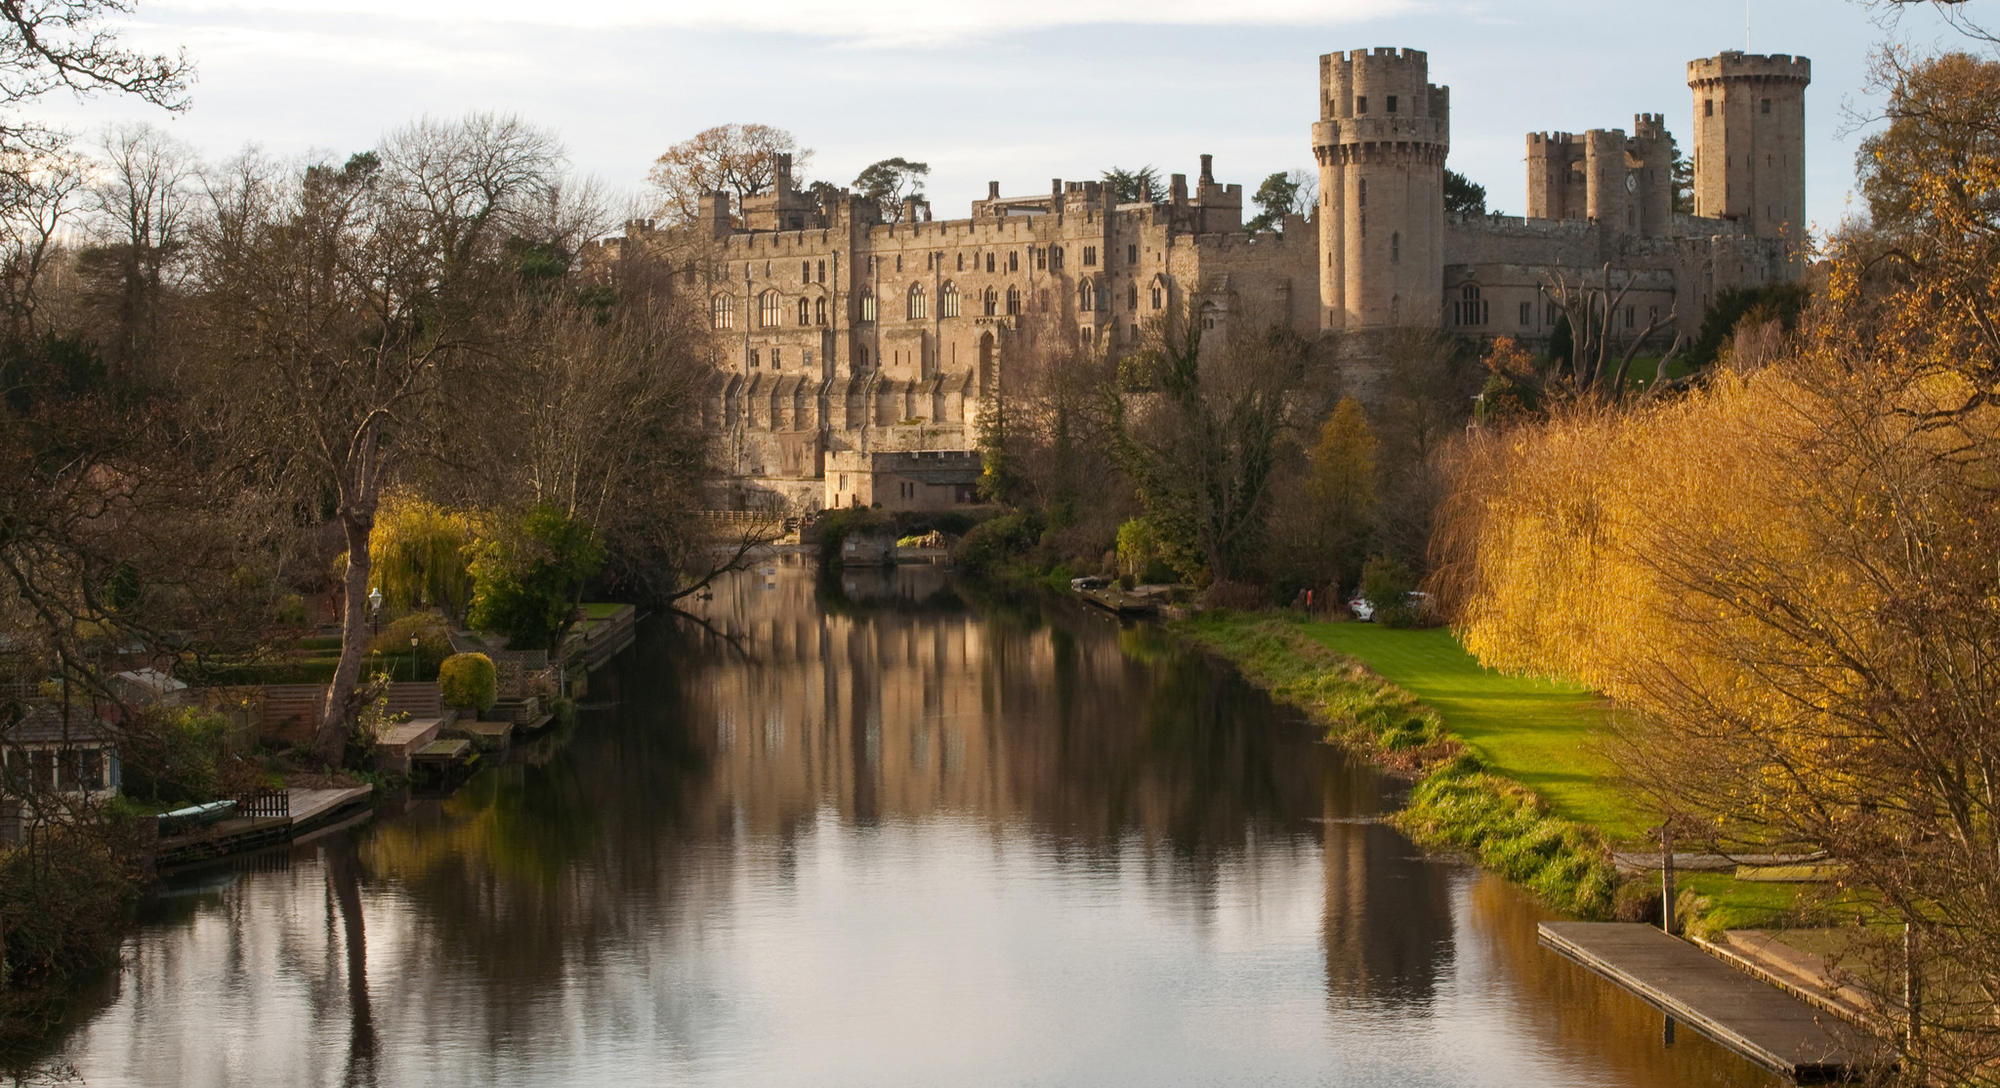 Autumn colours at Warwick castle on the river Avon, England.